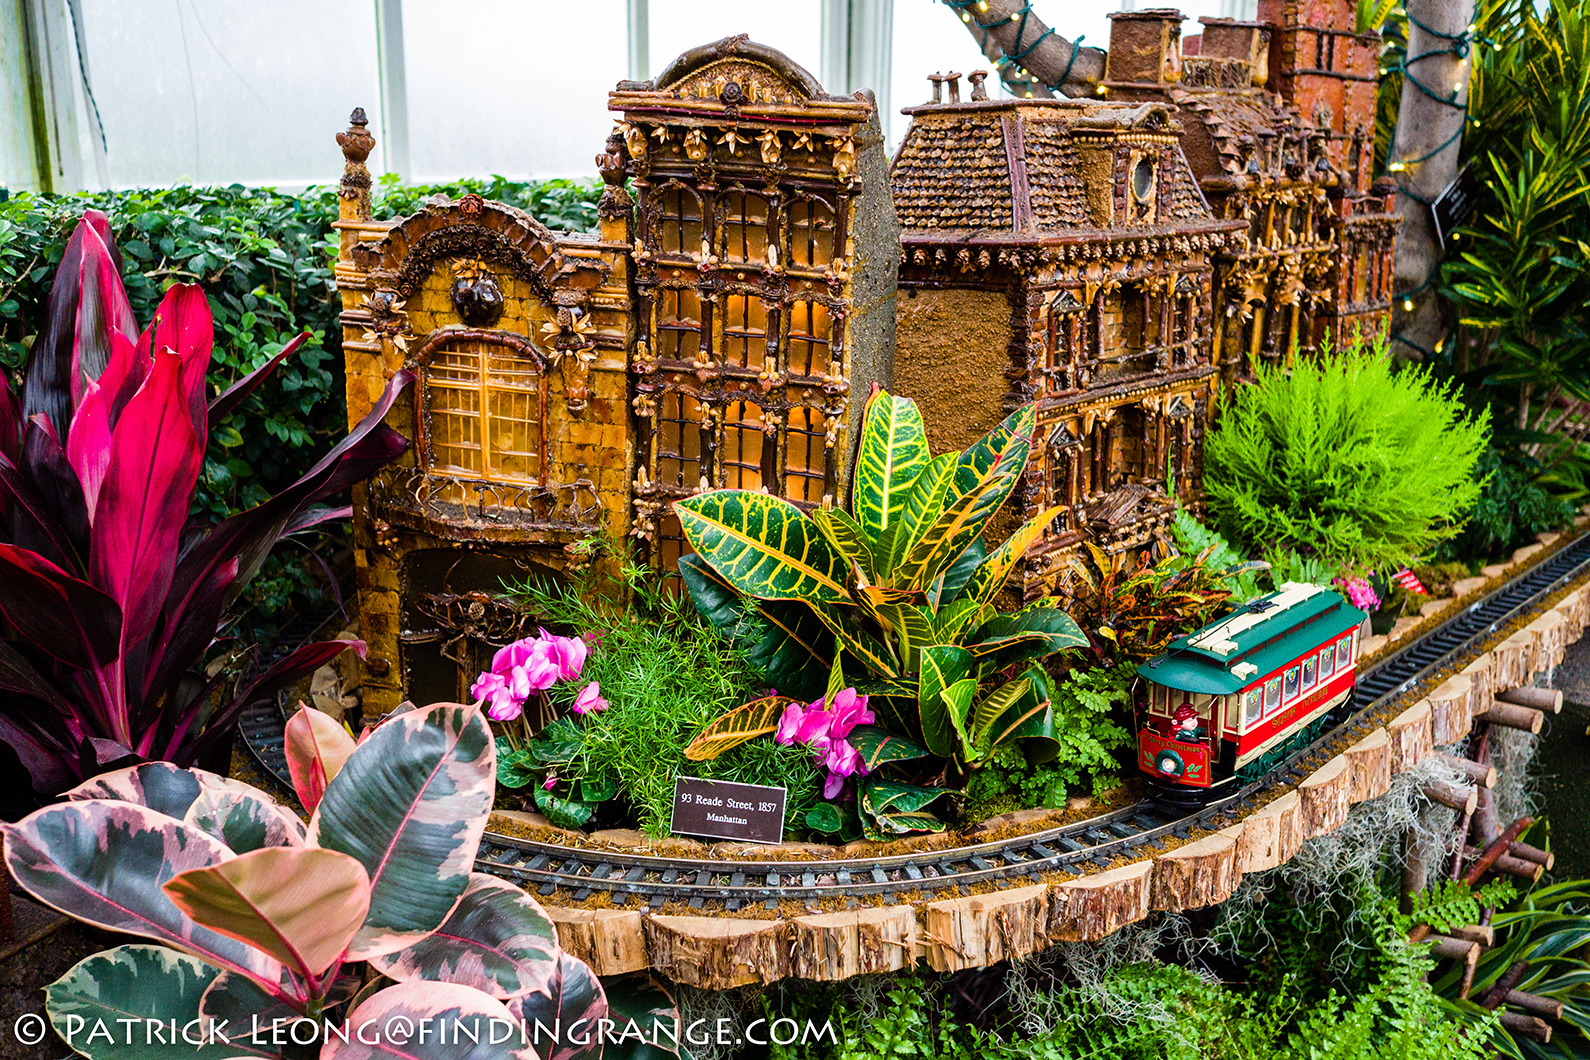 Leica X Typ 113 Pics From The Holiday Train Show